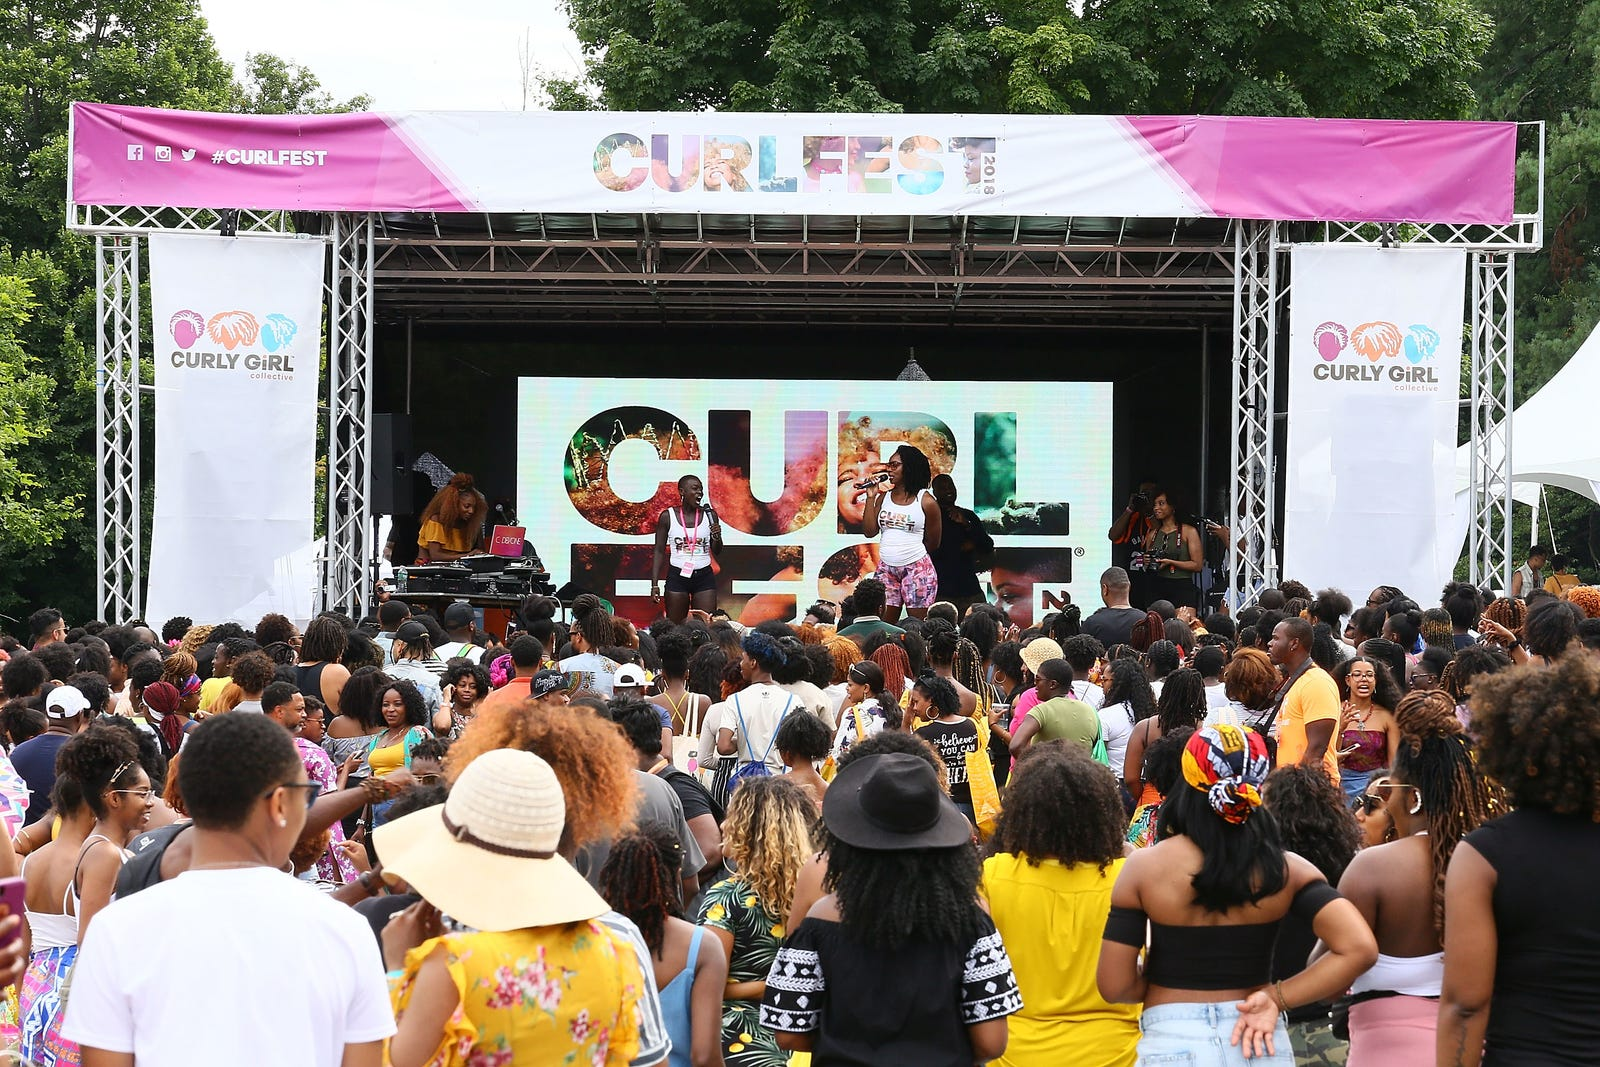 Atmosphere during Curlfest 2018 at Prospect Park on July 21, 2018 in New York City.